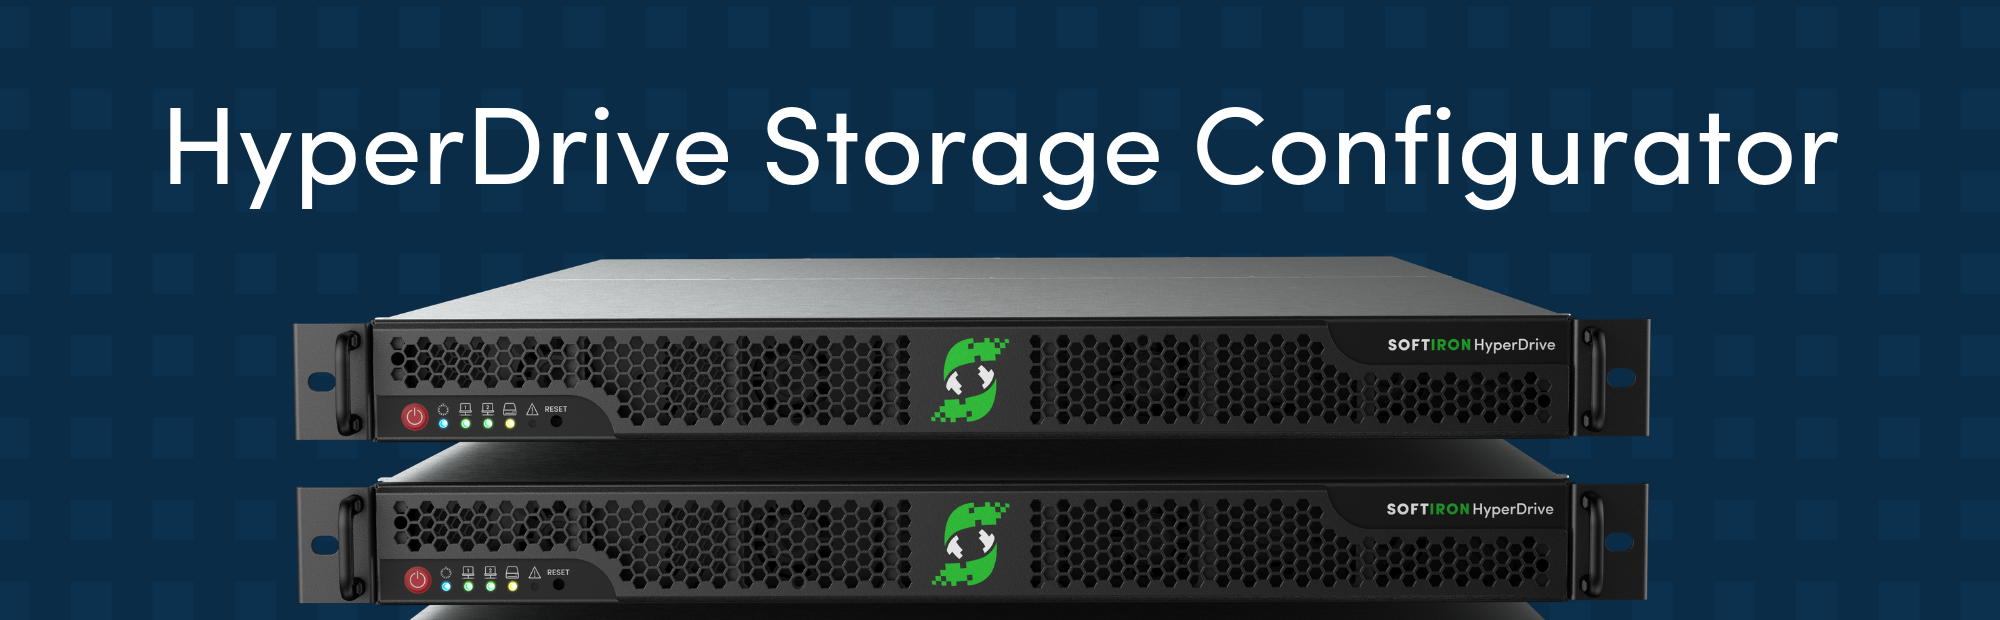 Image for HyperDrive Storage Configurator